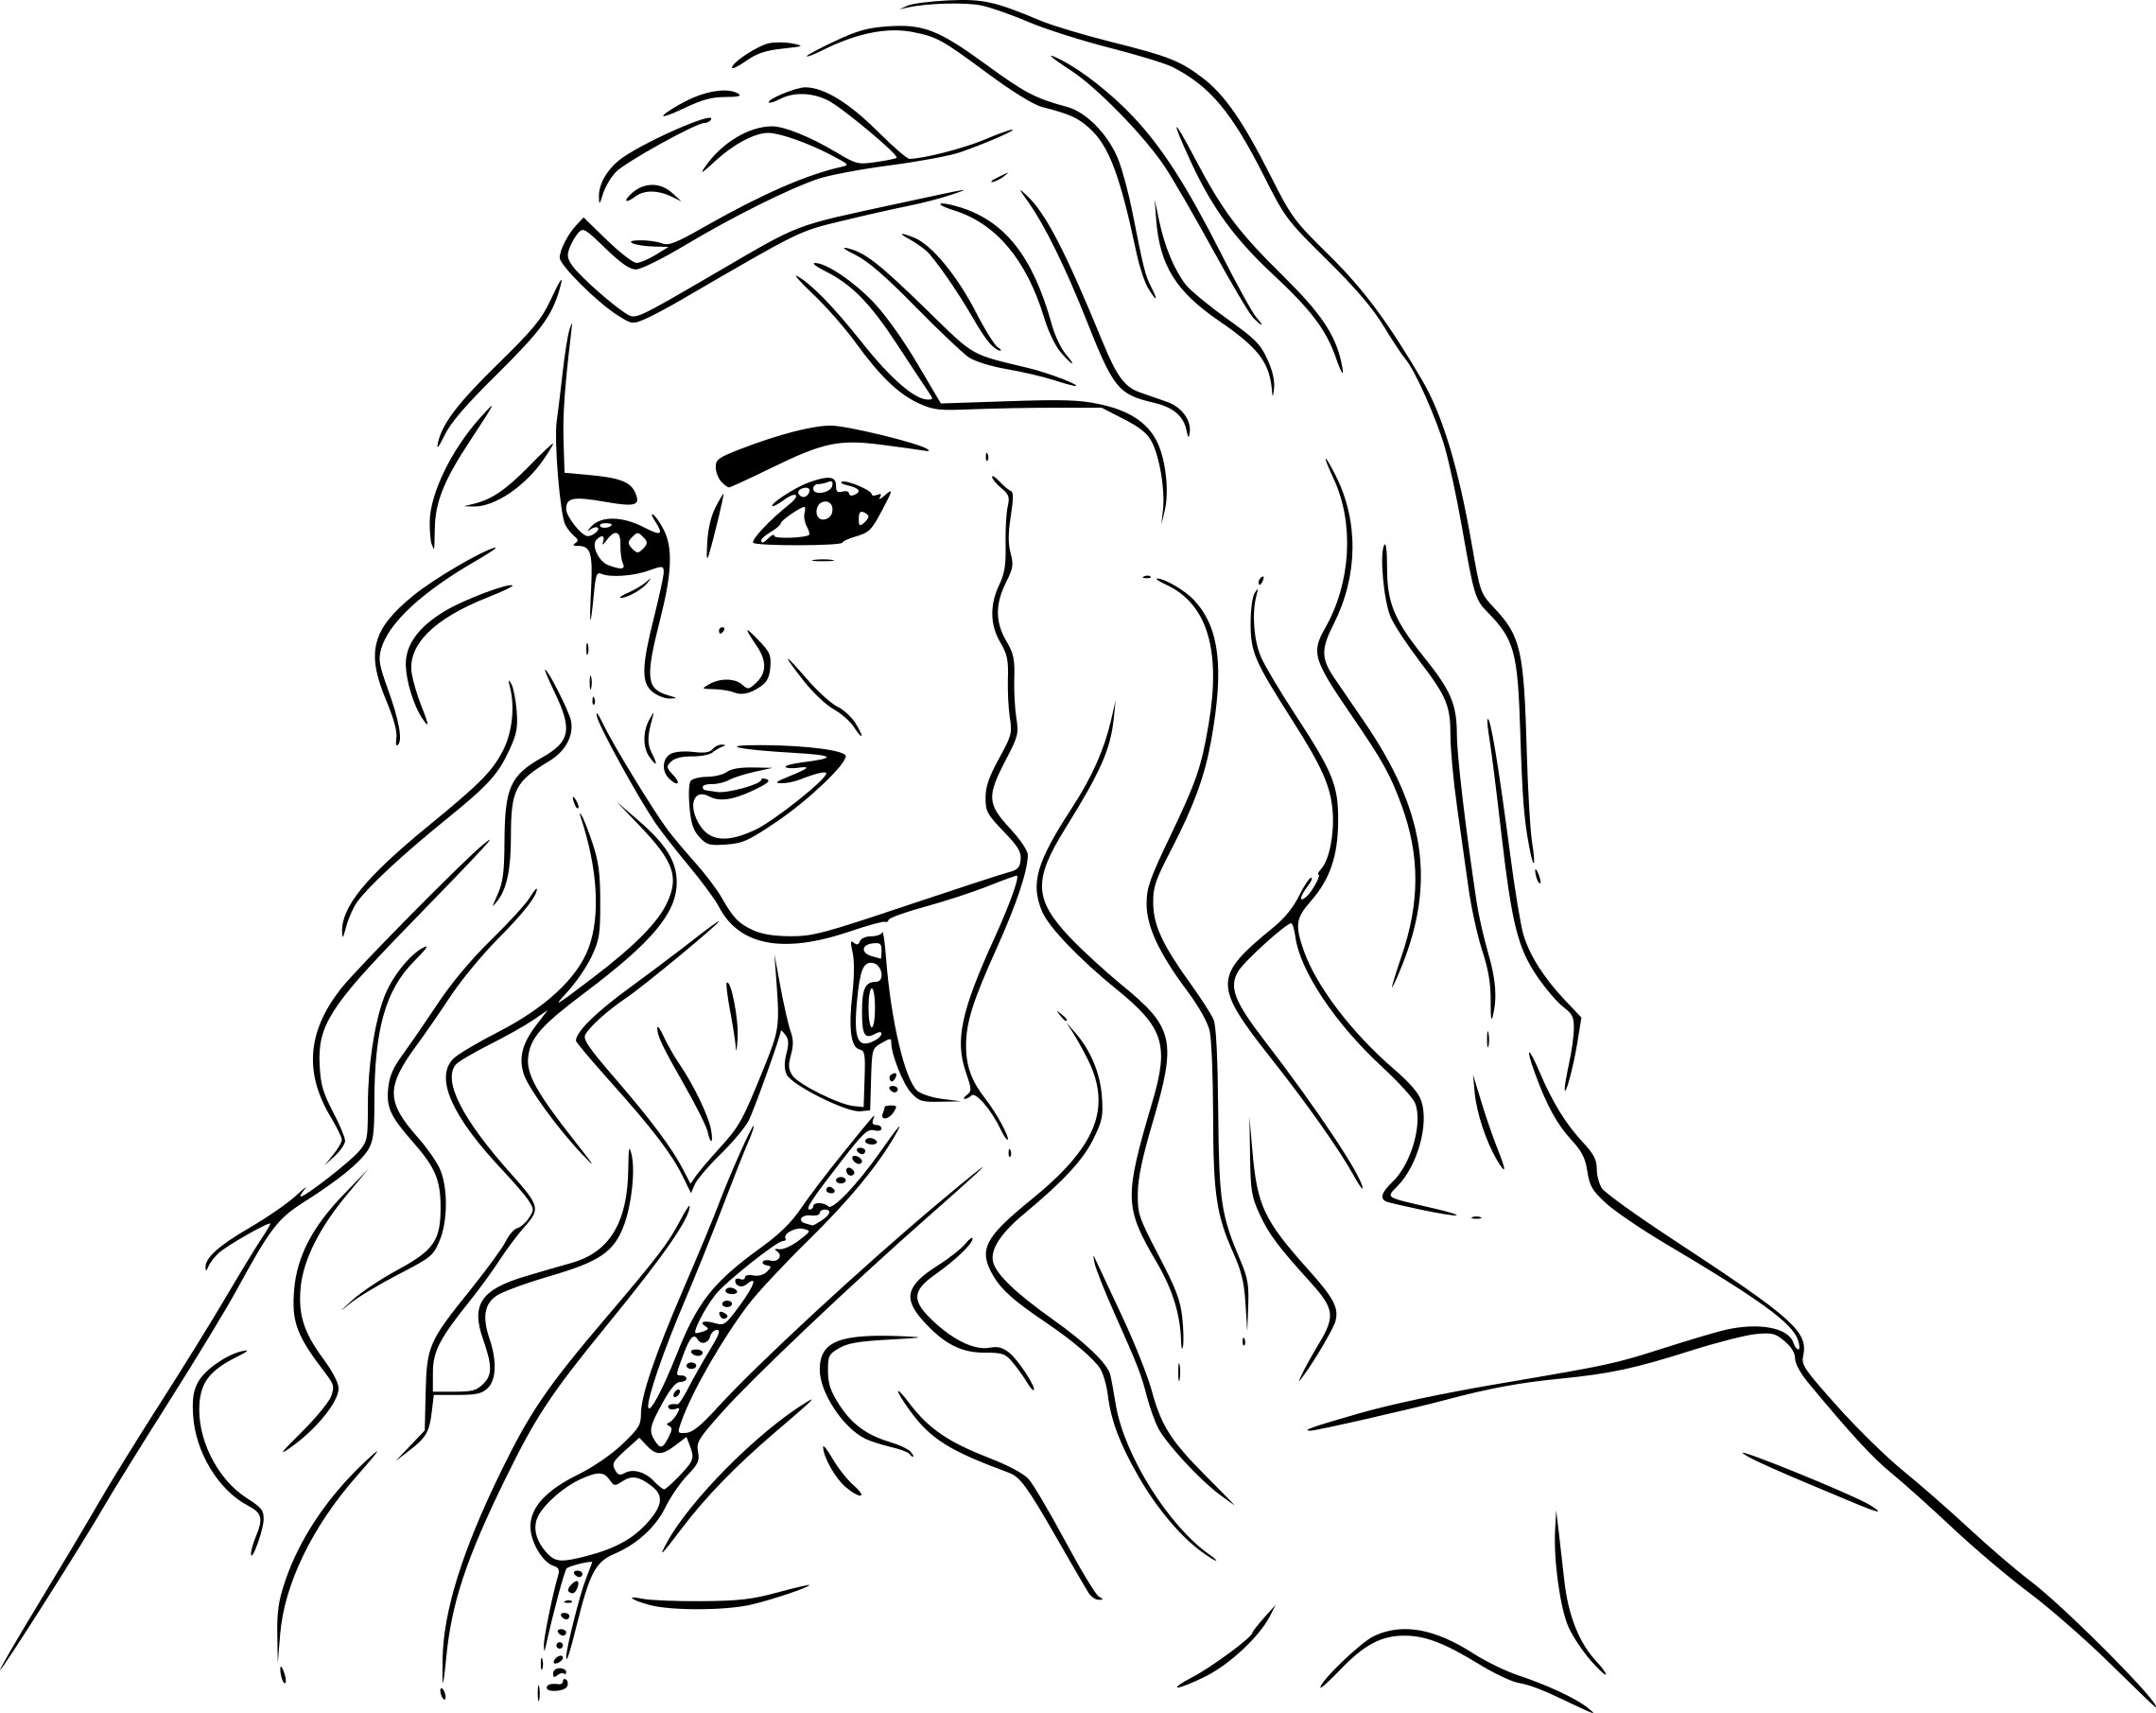 Descendants Coloring Pages Printable At Getdrawings Com Free For